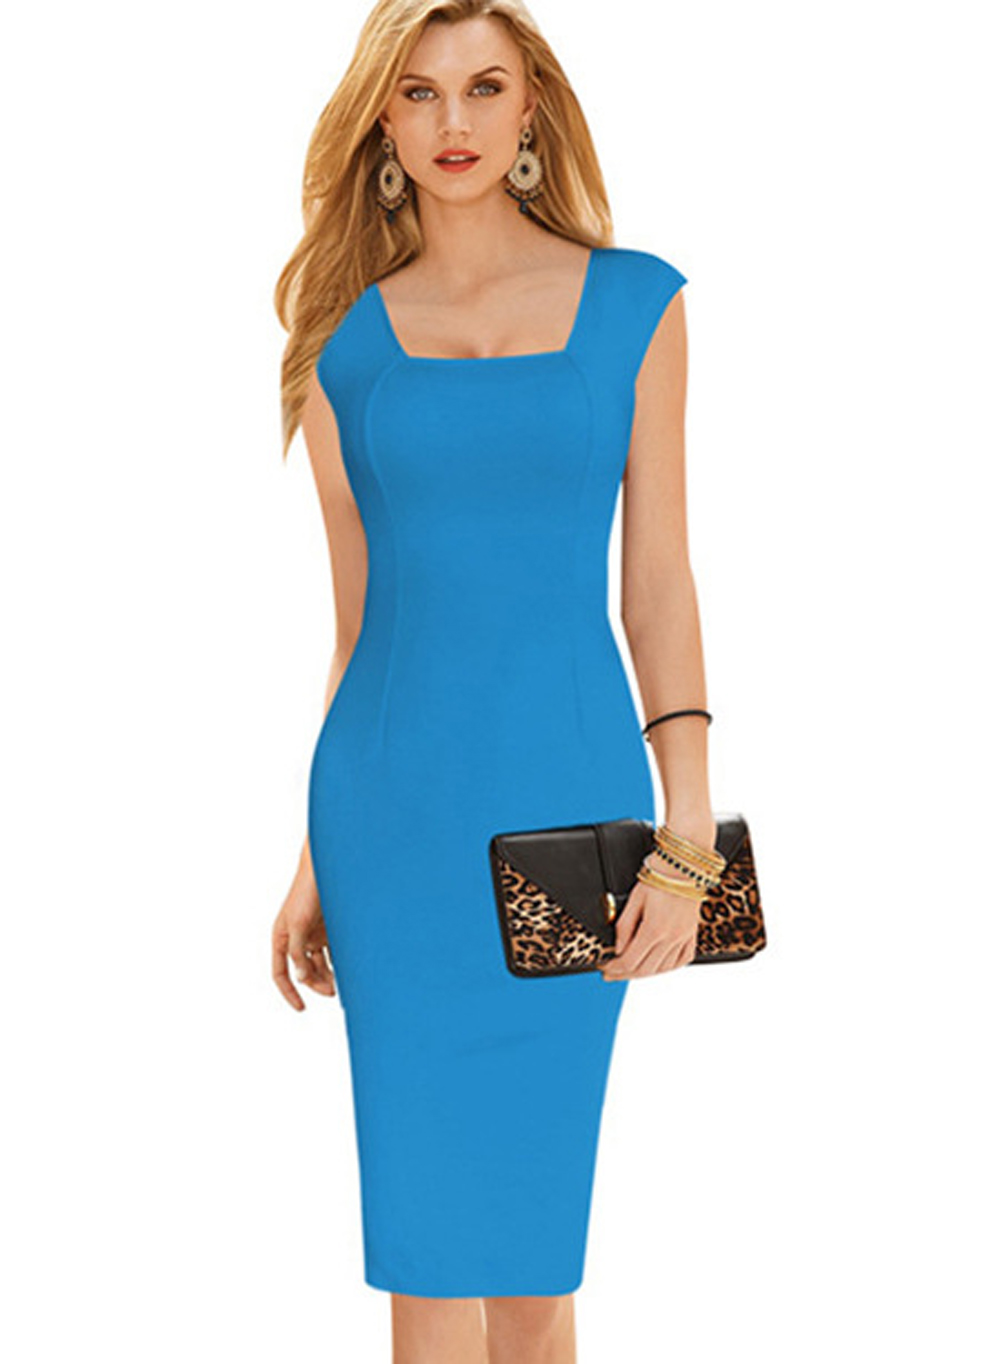 Women Square Collar Pencil Dresses 2016 Summer New Lady Pink Yellow Blue Black Sleeveless Back V Sheath Knee Length Formal Dress(China (Mainland))